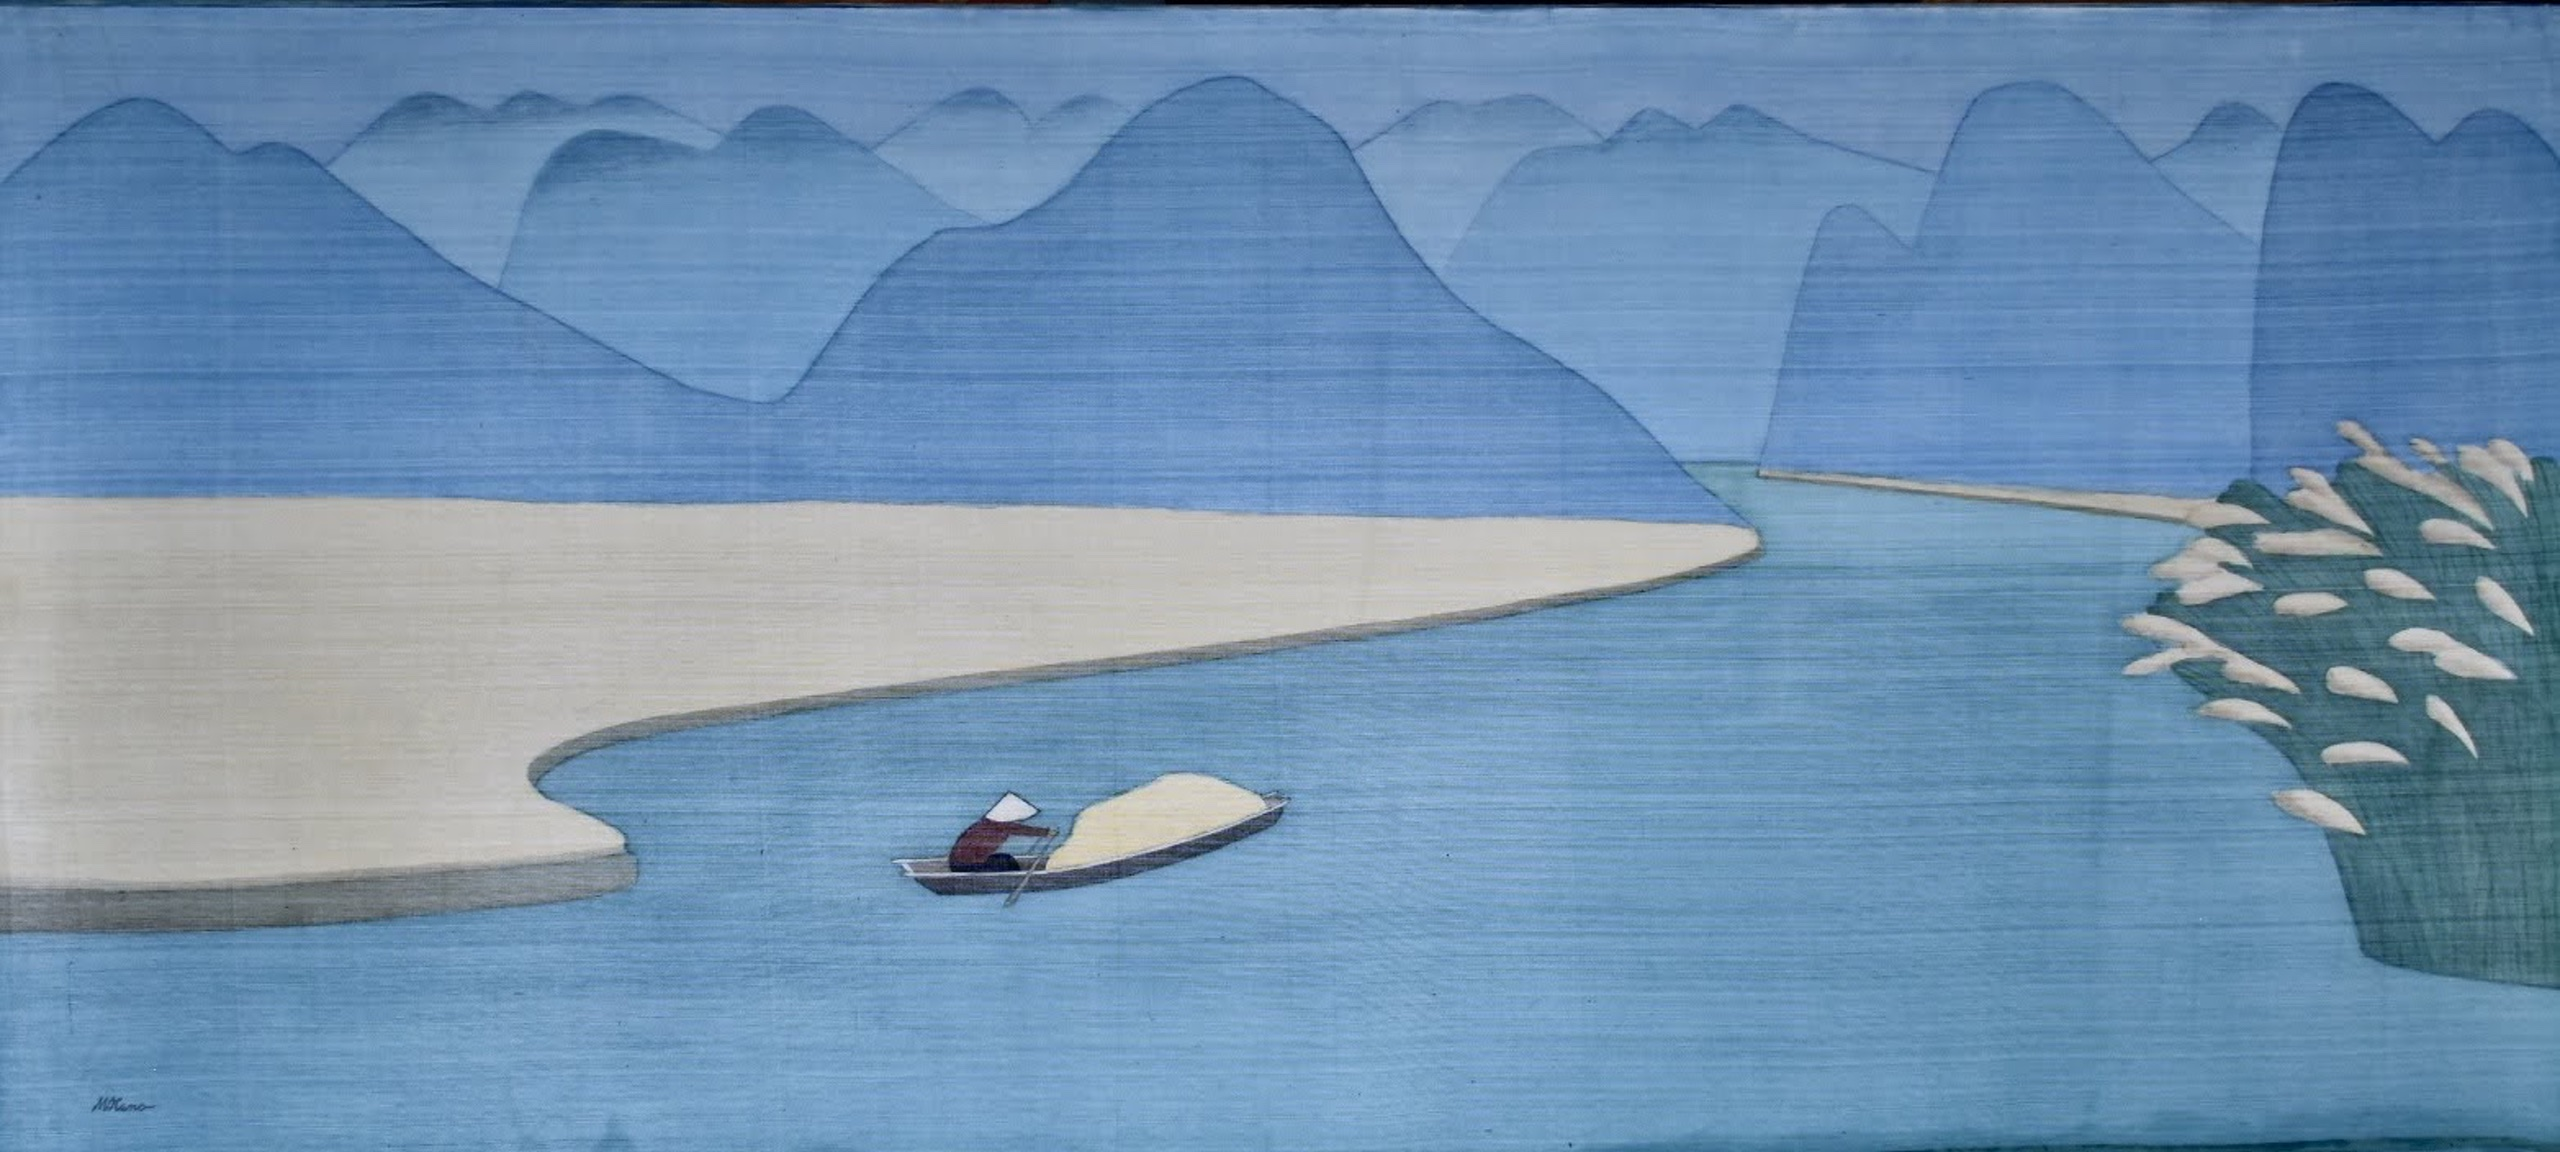 Landscape of Ninh Binh, silk painting, 87cmx197cm by the artist Hoang Minh Hang in a supplied photo.